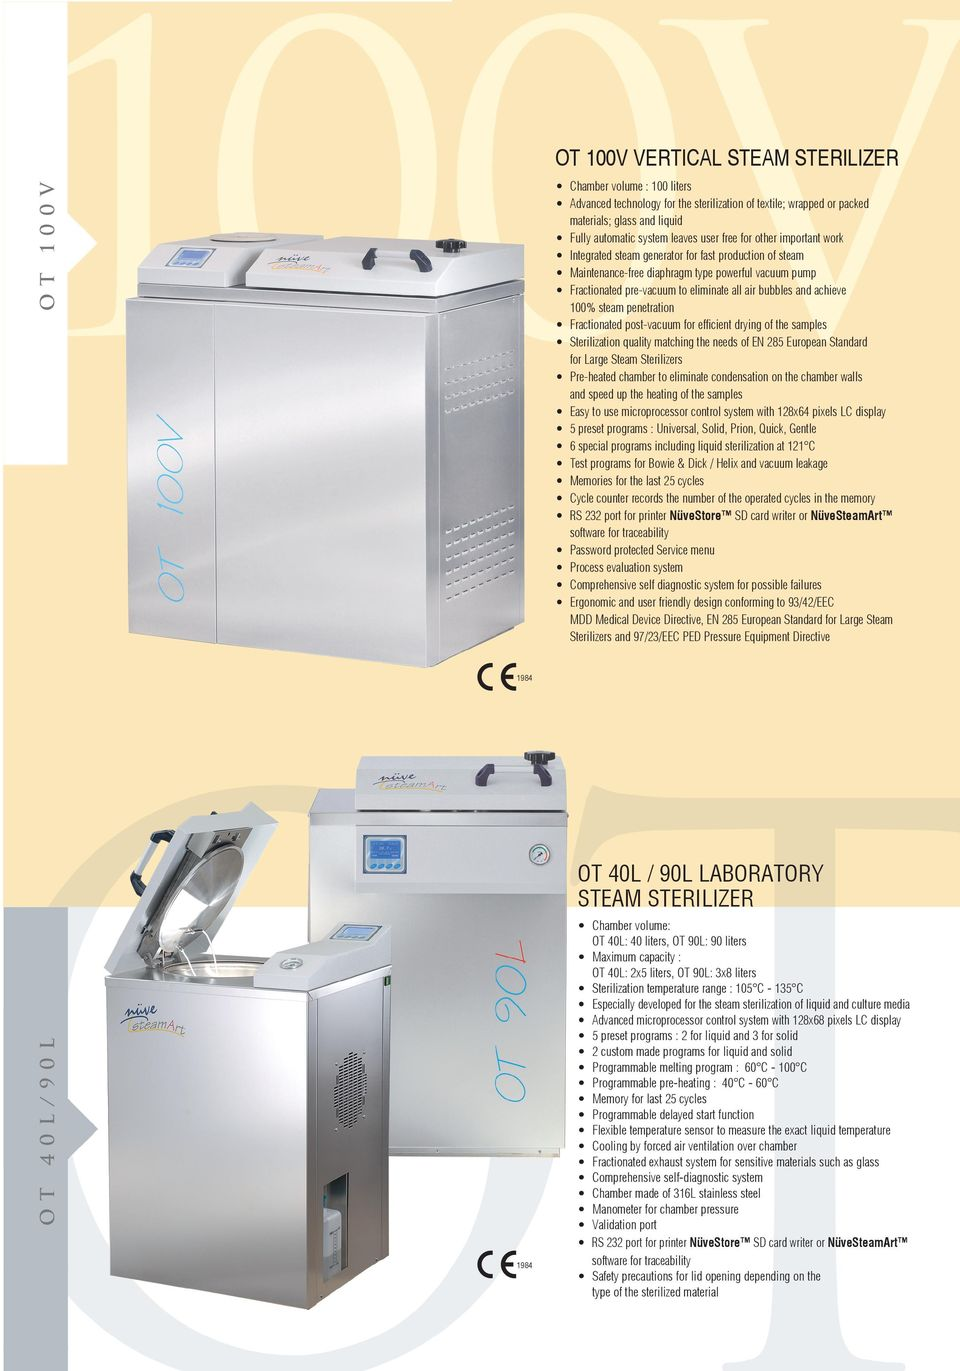 and achieve 100% steam penetration Fractionated post-vacuum for efficient drying of the samples Sterilization quality matching the needs of EN 285 European Standard for Large Steam Sterilizers